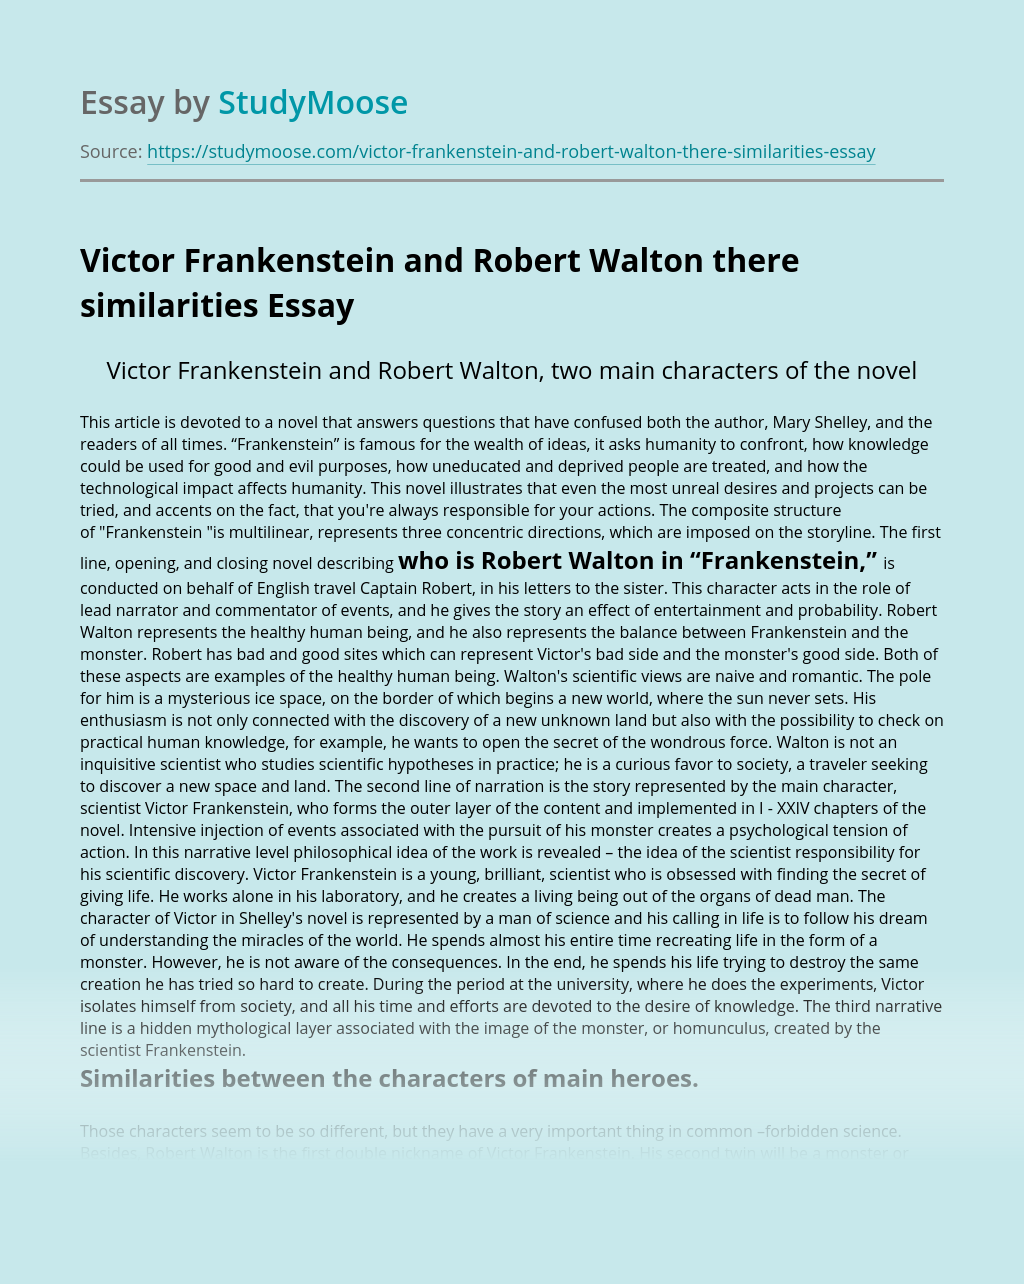 Victor Frankenstein and Robert Walton there similarities